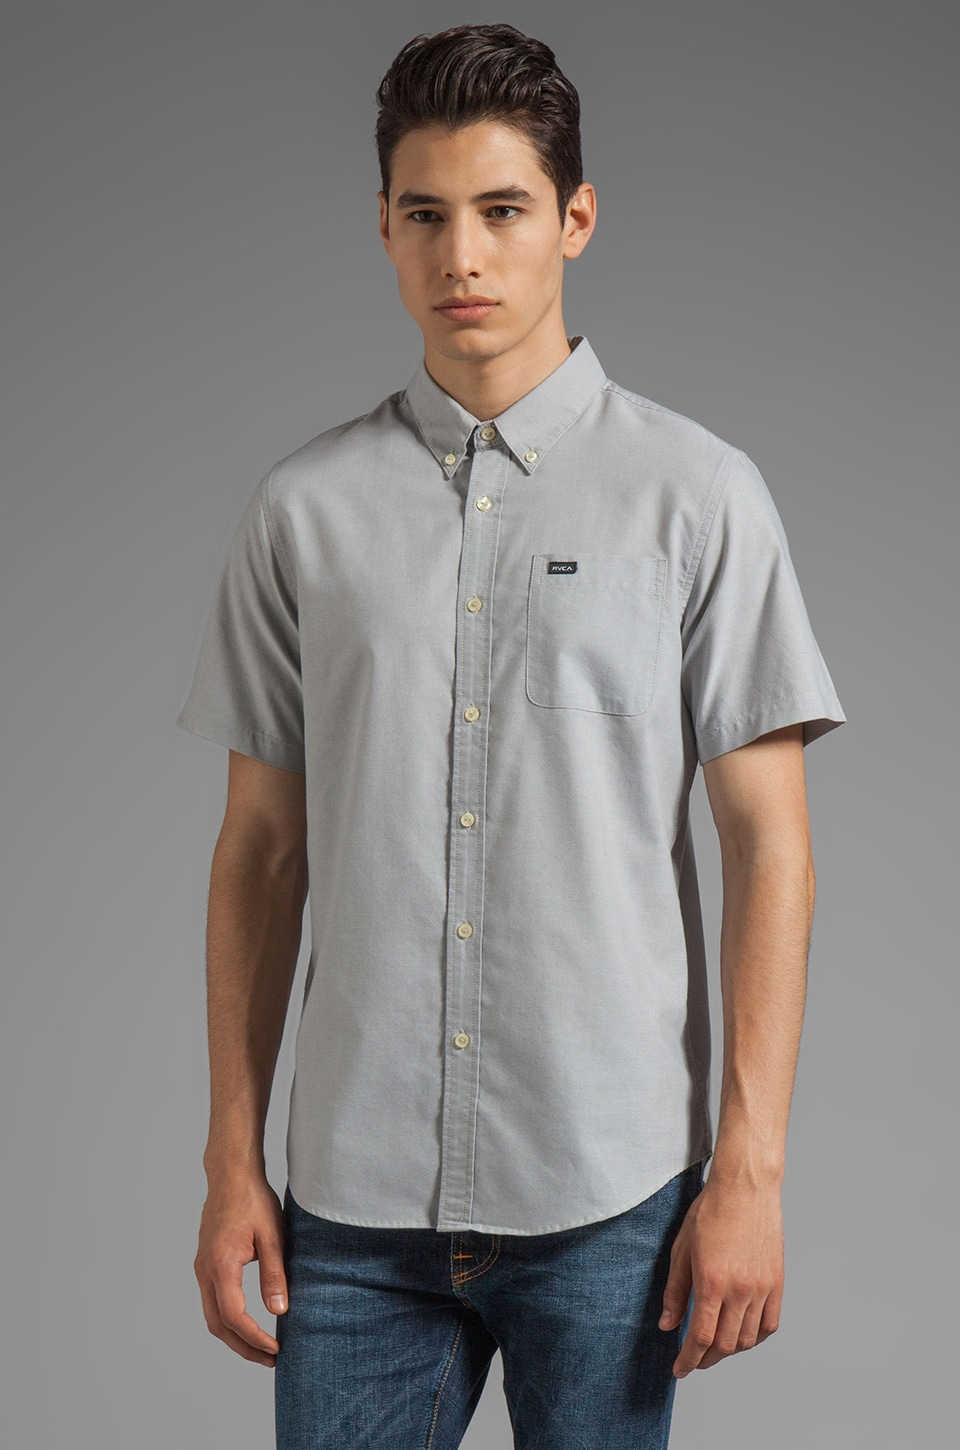 RVCA That'll Do Oxford Short Sleeve in Olive Mute